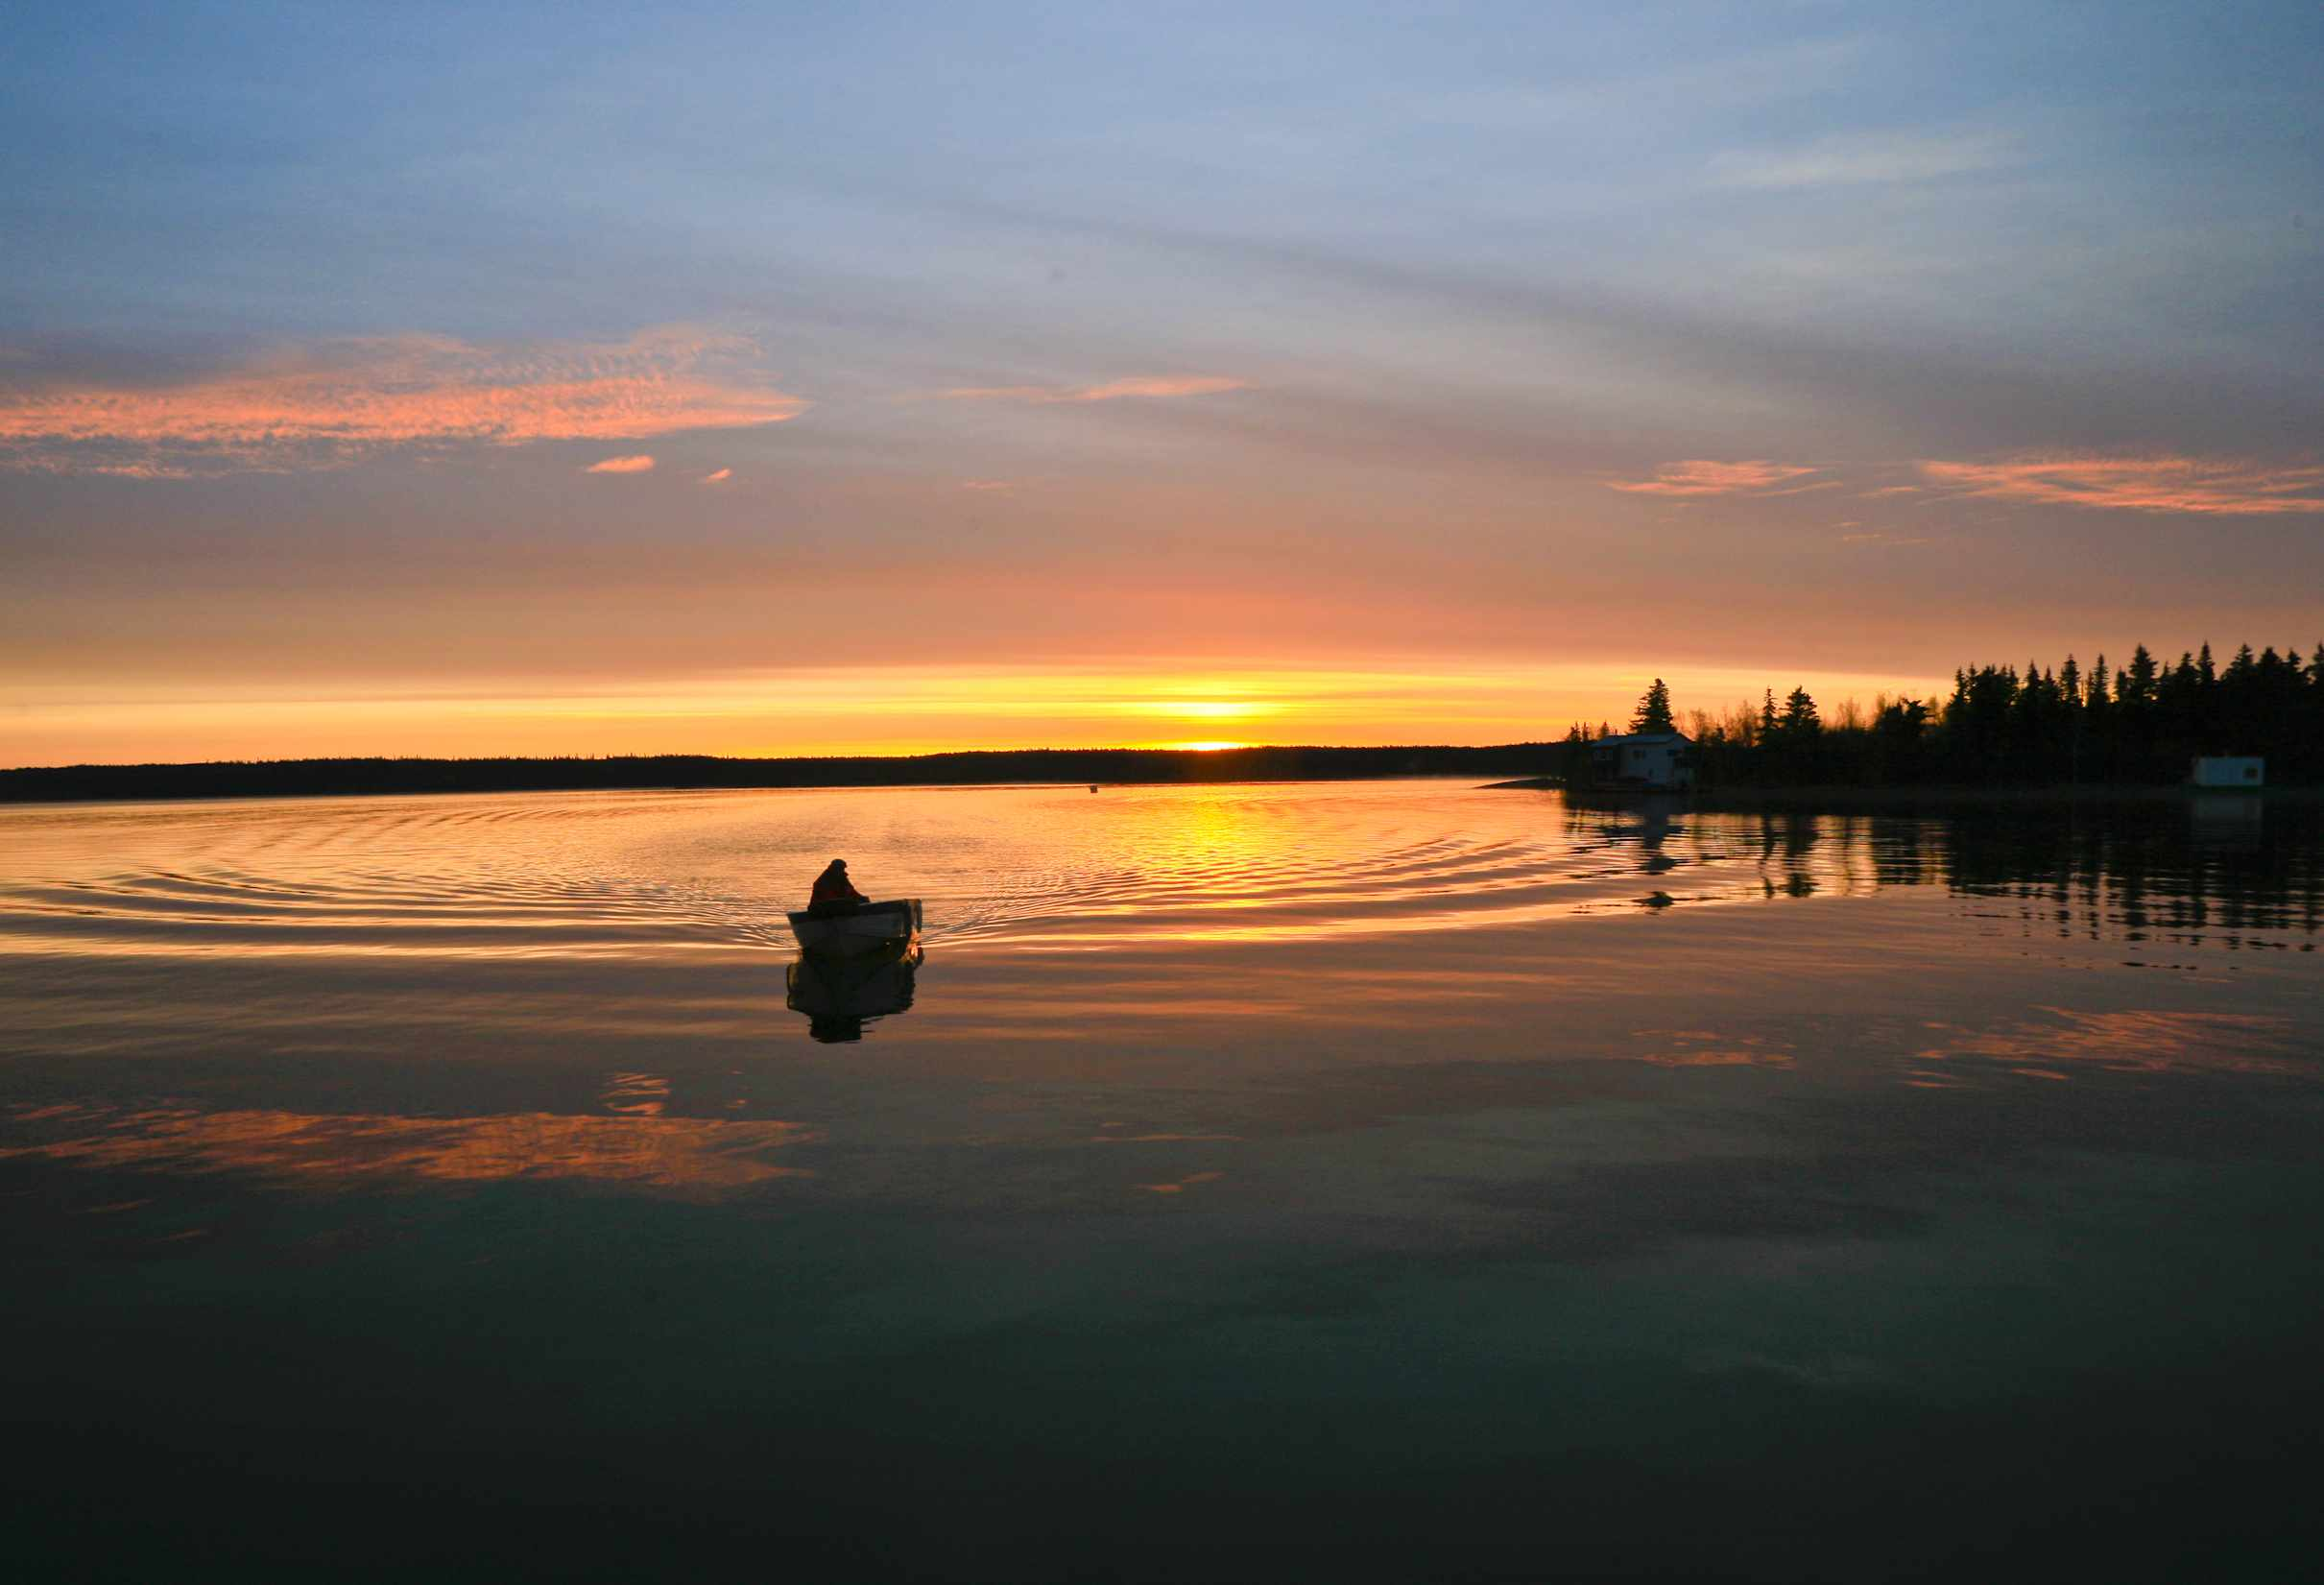 Outboard Boat on a lake Silhouetted by Sunrise